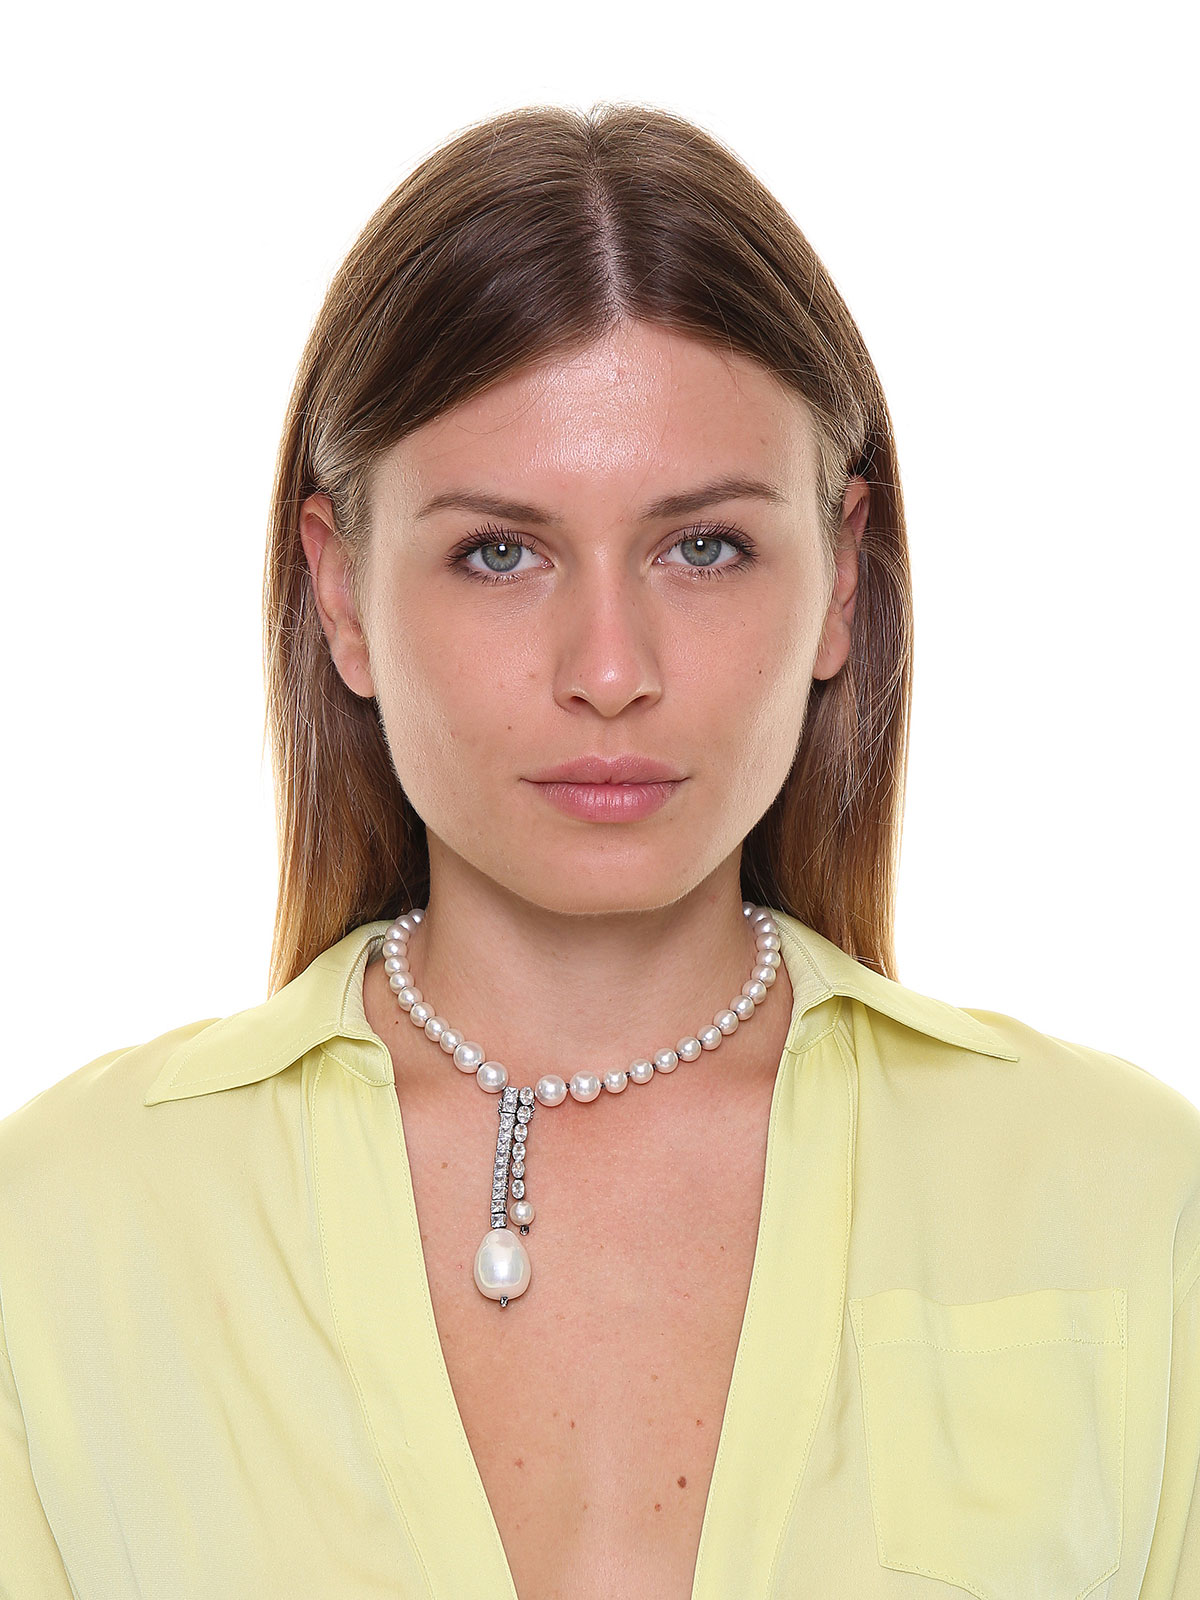 Pearl necklace with central glass drop